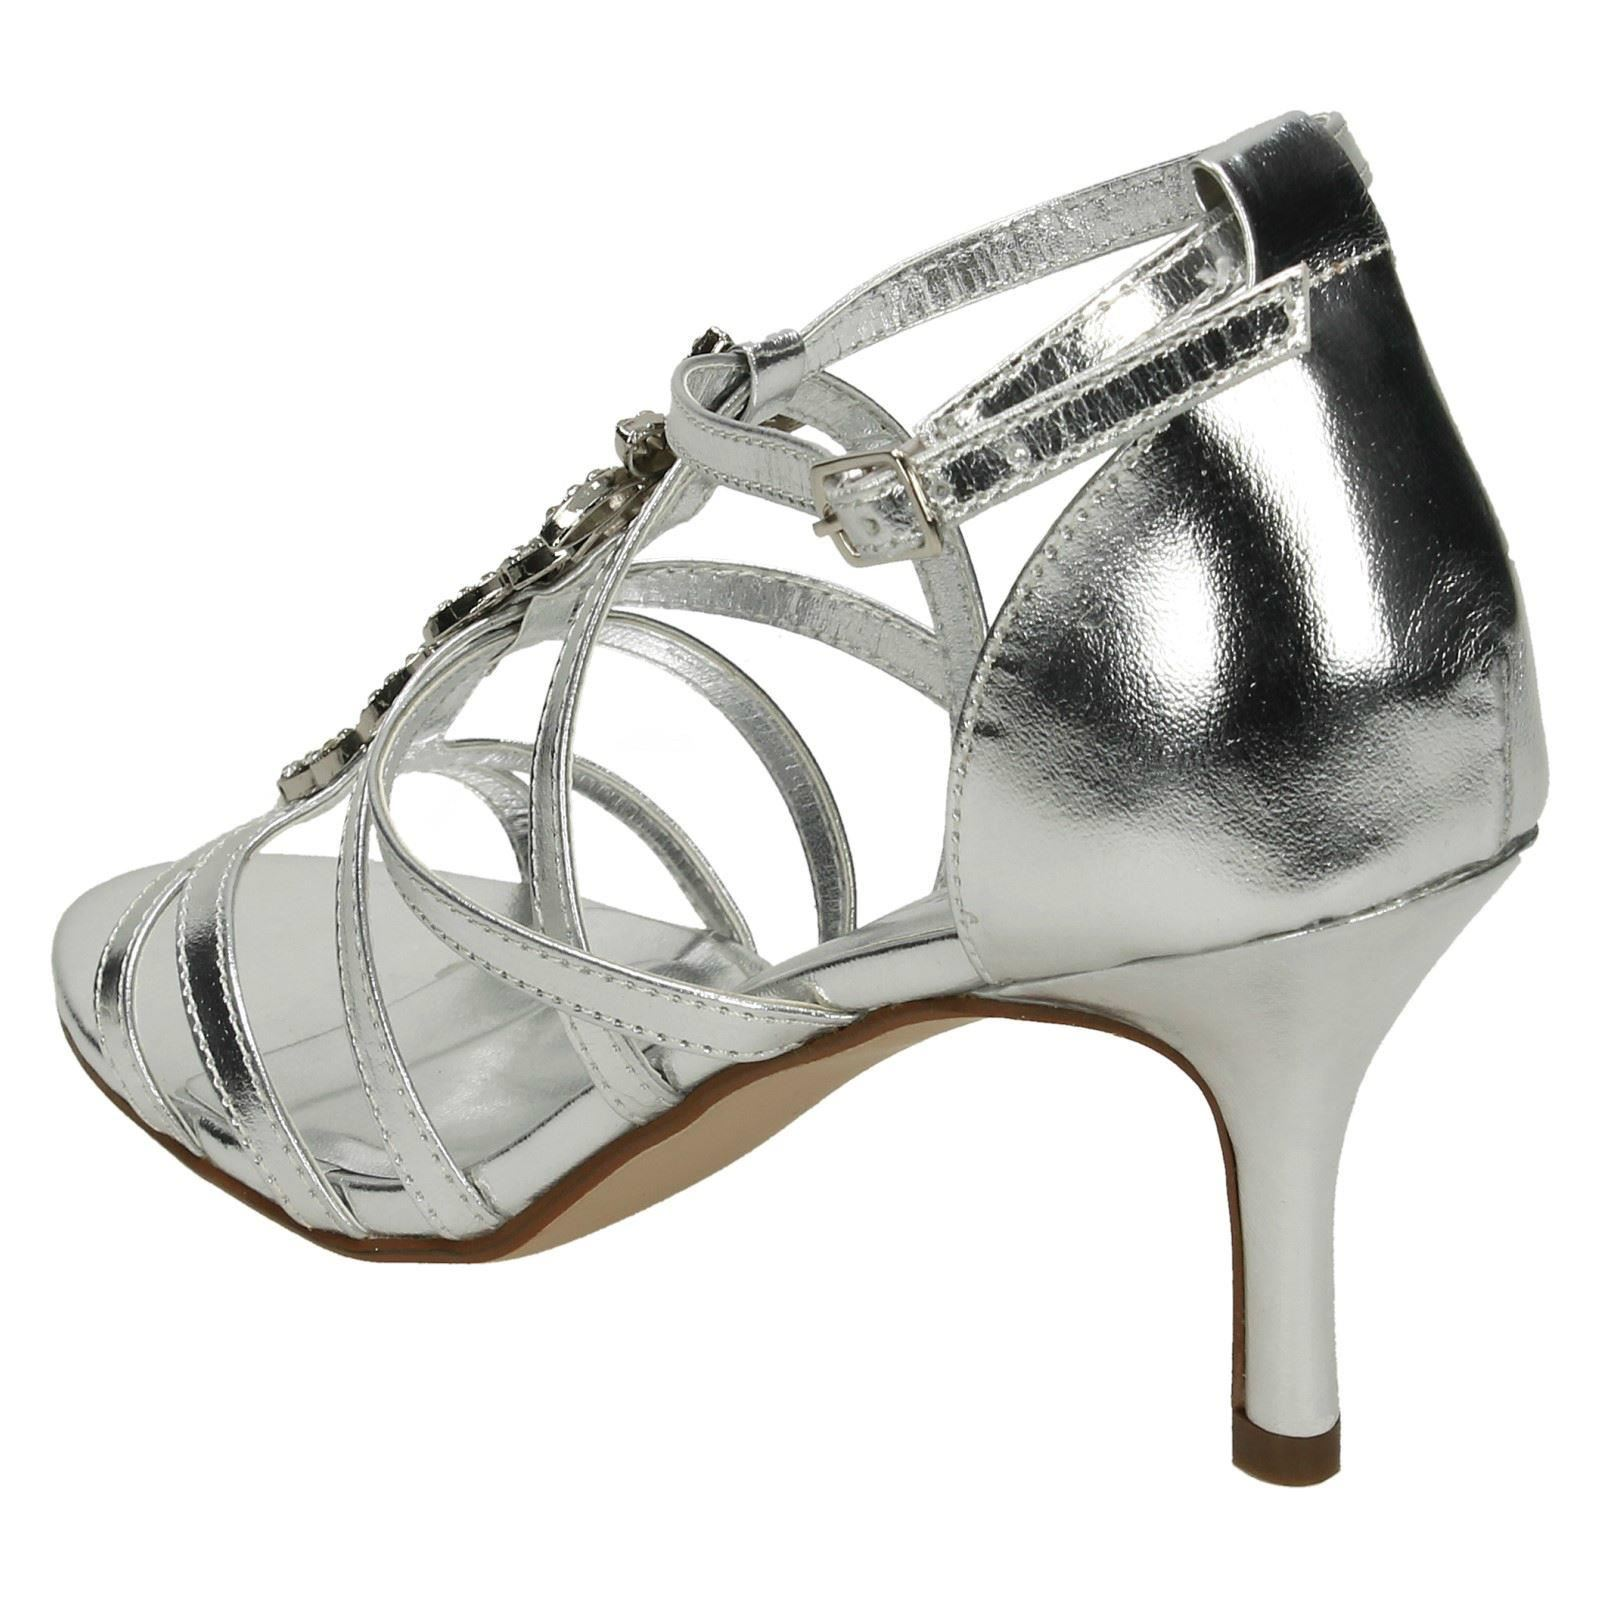 012d269f0cc Ladies Anne Michelle Mid Heel Strappy Sandals F10582 Silver UK 8 Standard.  About this product. Picture 1 of 10  Picture 2 of 10  Picture 3 of 10   Picture 4 ...